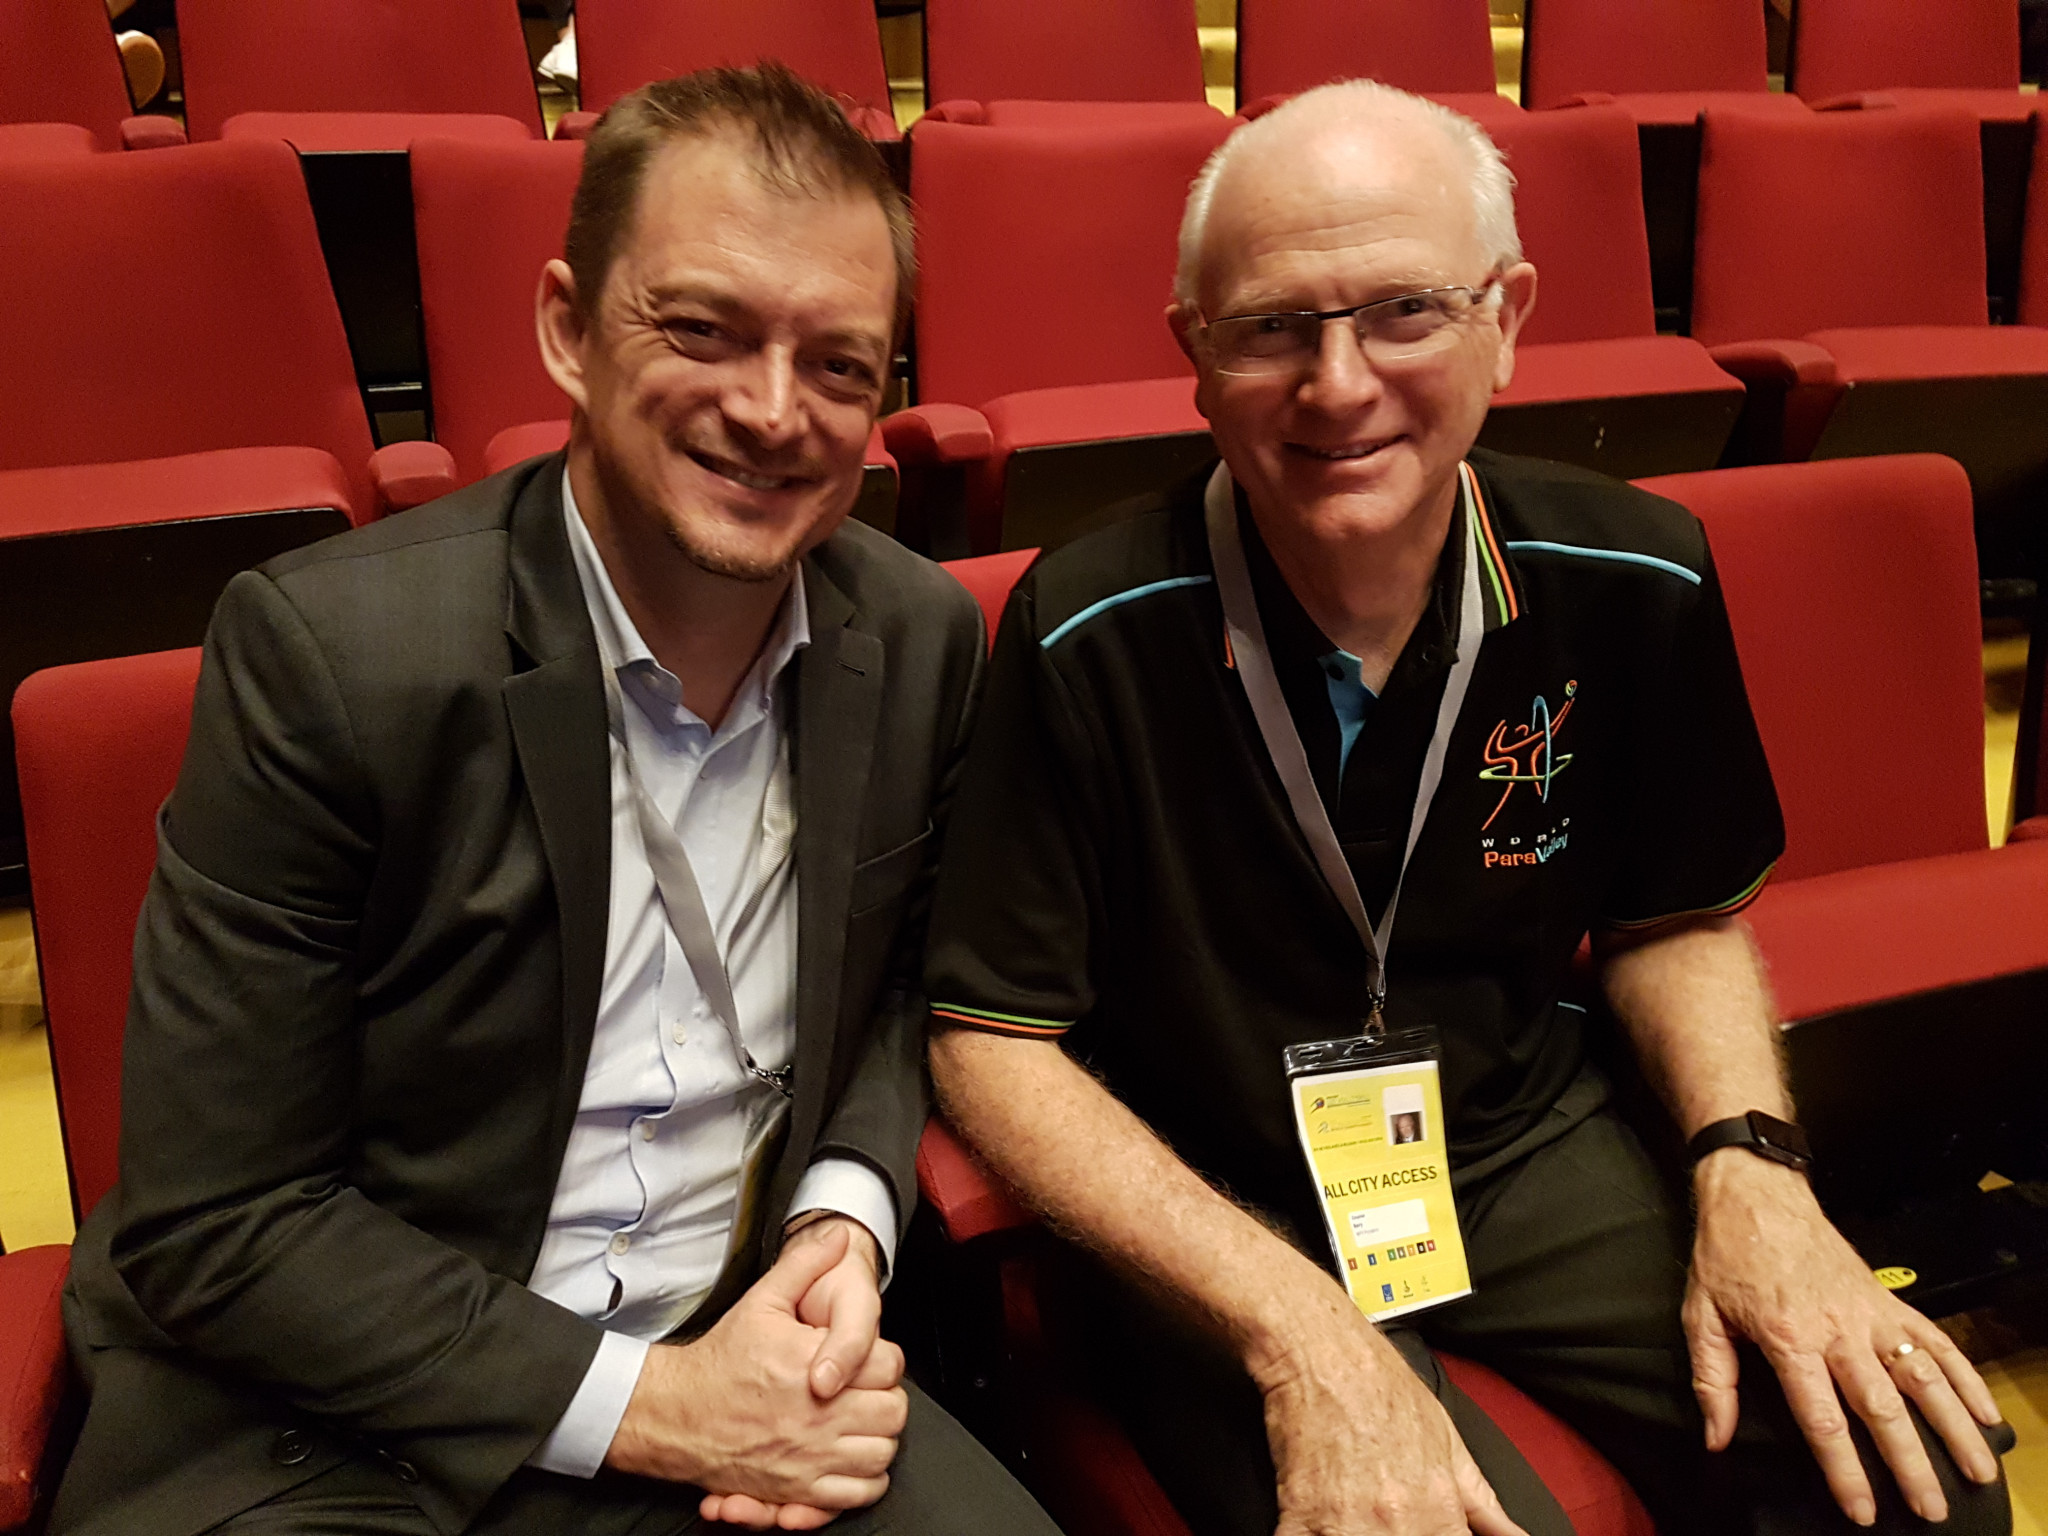 International Paralympic Committee President Andrew Parsons, left, held talks with World ParaVolley counterpart Barry Couzner, right, during the World ParaVolley Sitting Volleyball World Championships ©World ParaVolley